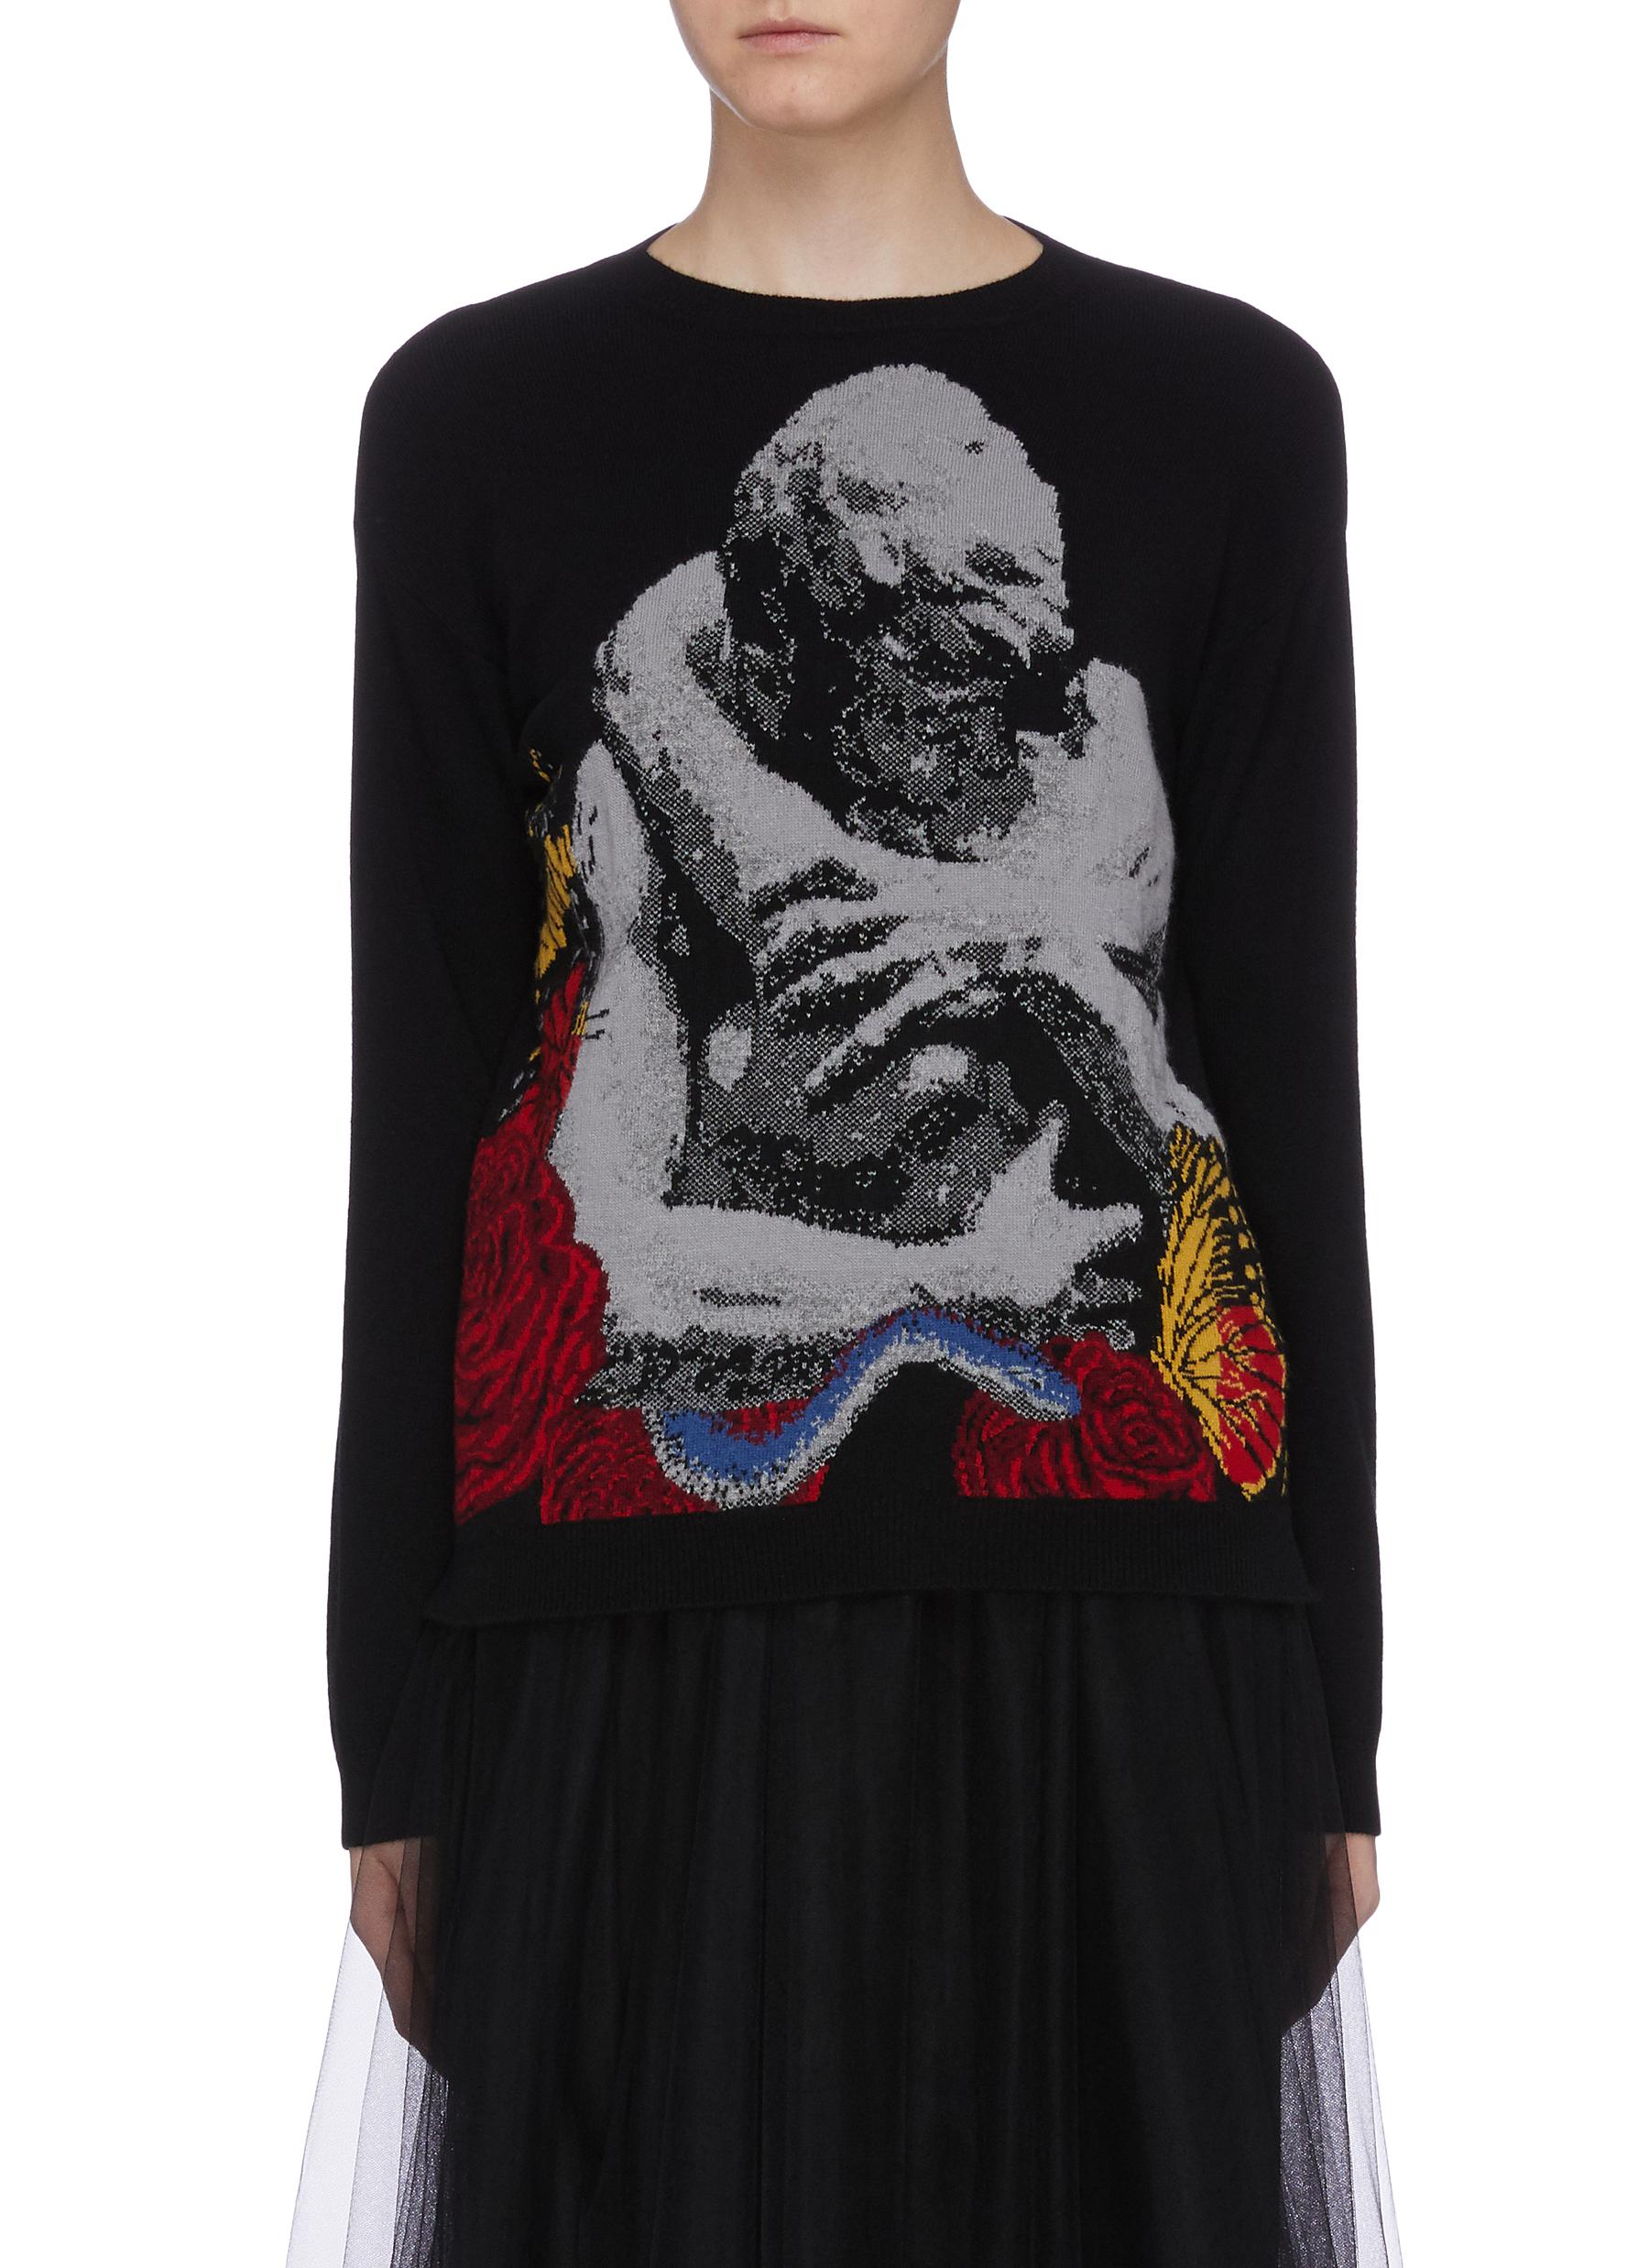 Lovers slogan intarsia sweater by Valentino